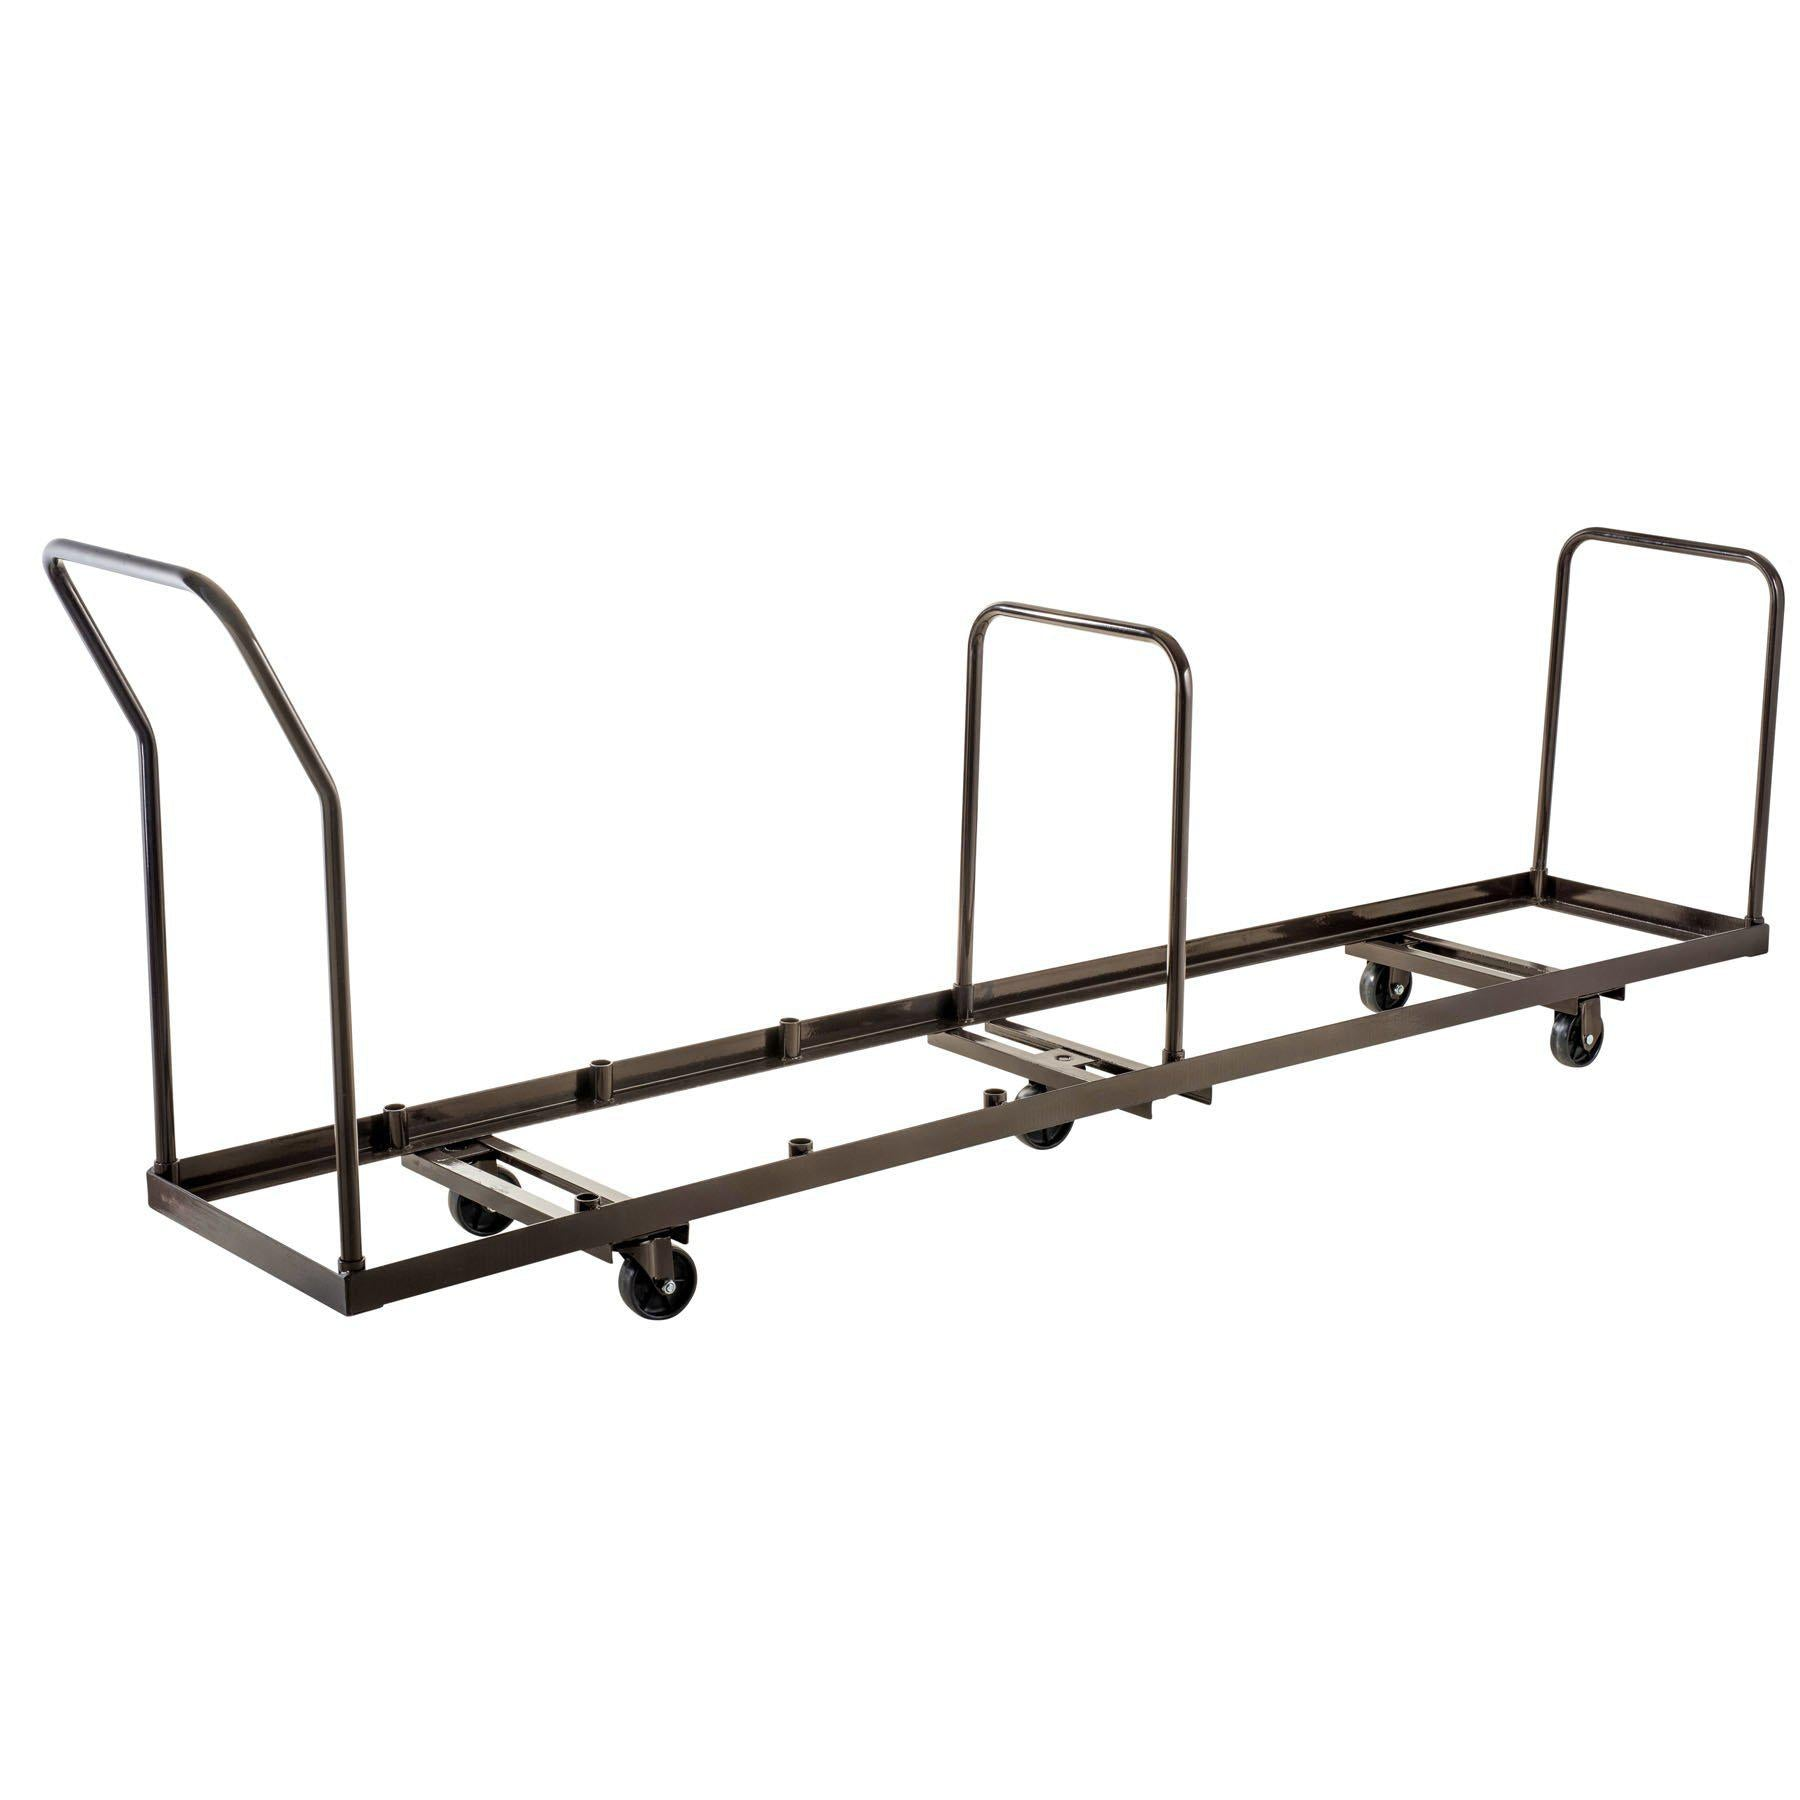 Folding Chair Dolly For Vertical storage, 50 Chair Capacity-Chairs-